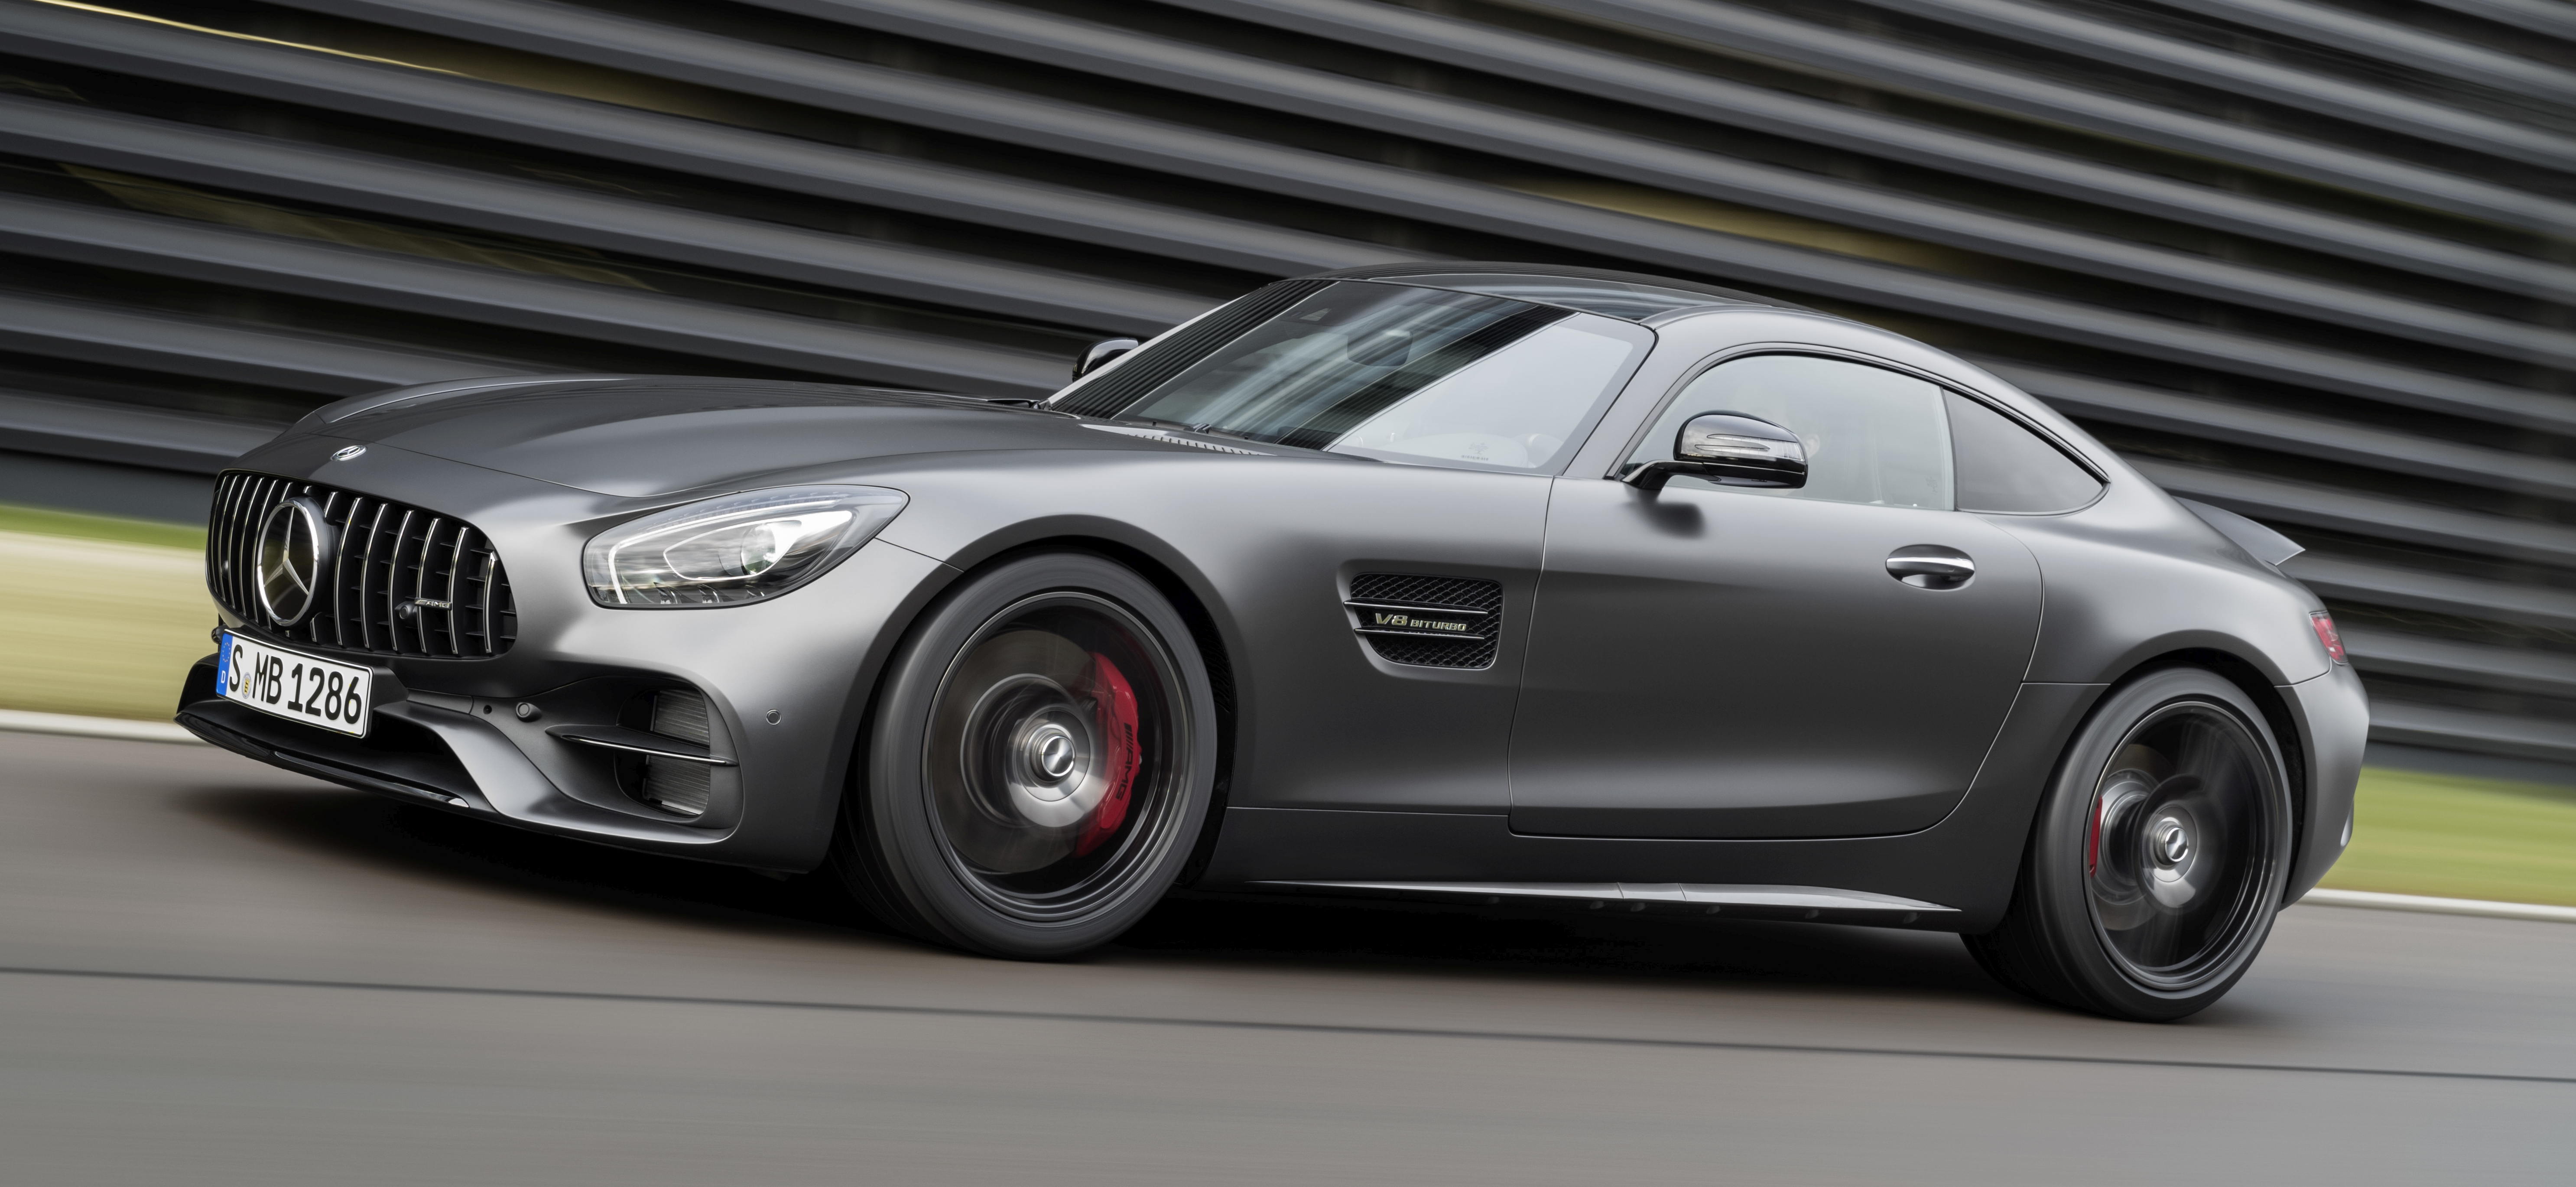 mercedes amg gt c coupe debuts in detroit amg gt and gt s get styling and tech updates for. Black Bedroom Furniture Sets. Home Design Ideas